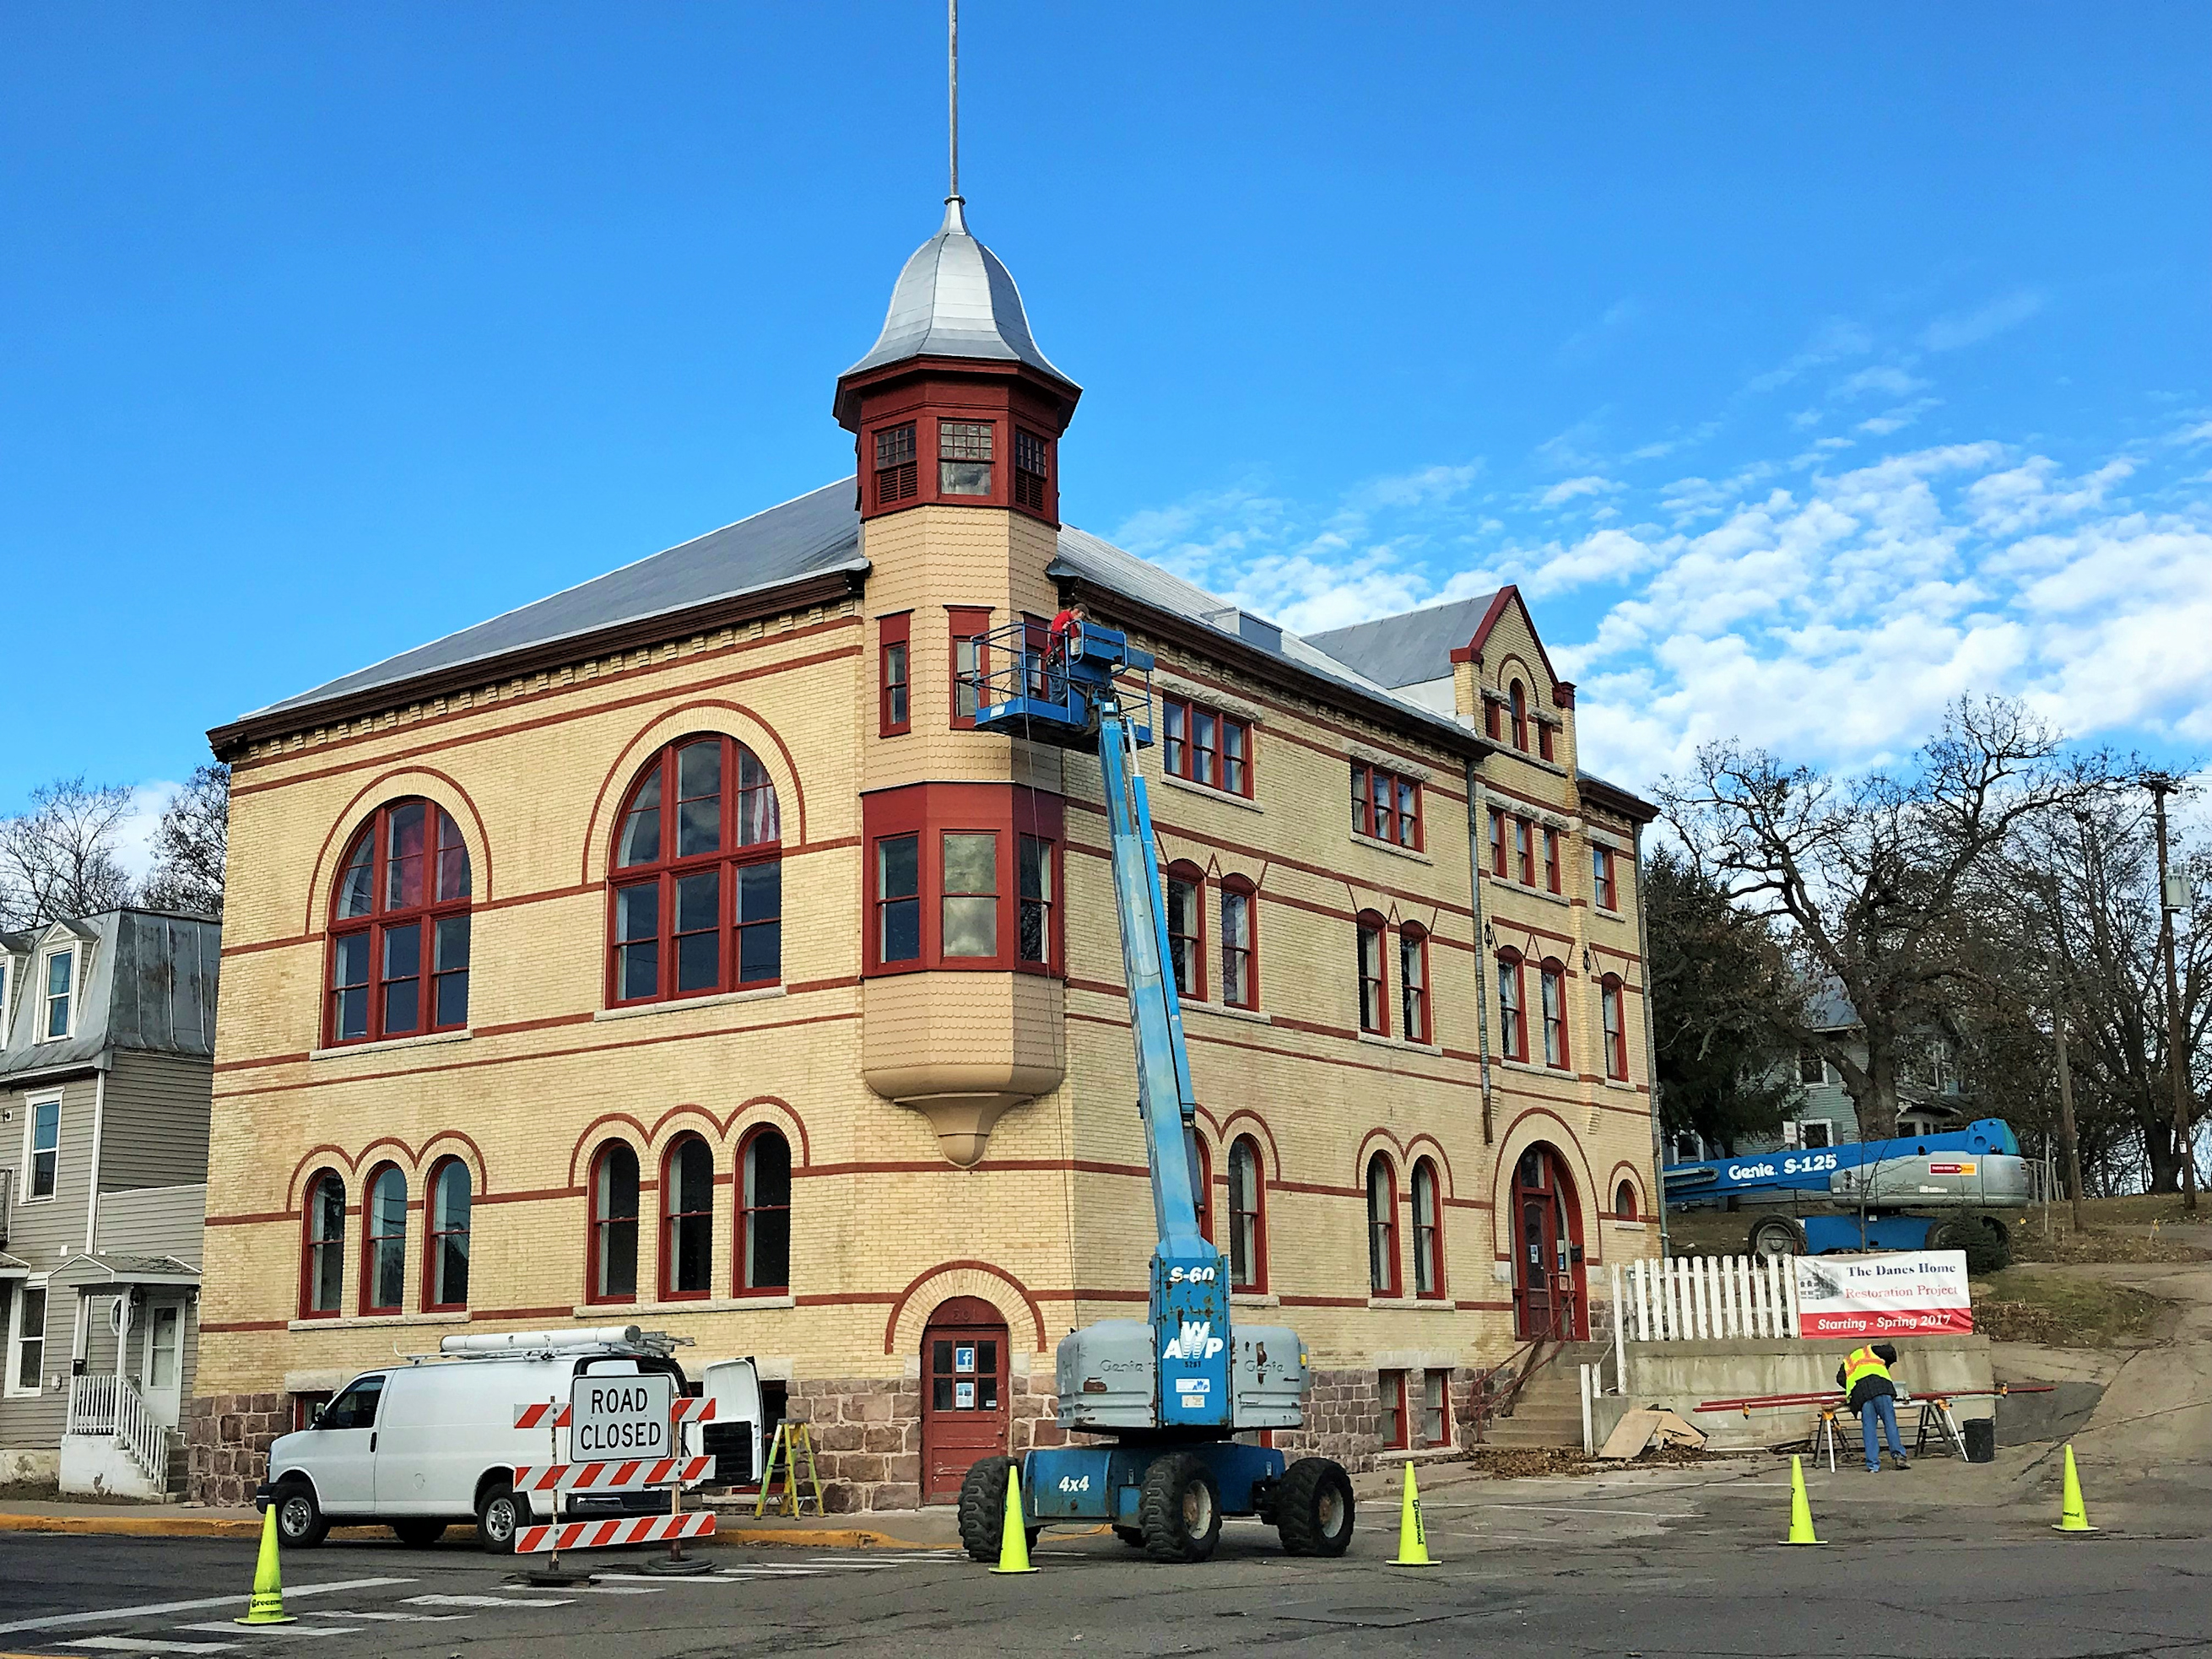 Renovation 3.jpg English: Danes Hall renovations continue. Date 24 November 2017, 10:17:11 Source Own work Author Chitownjohn